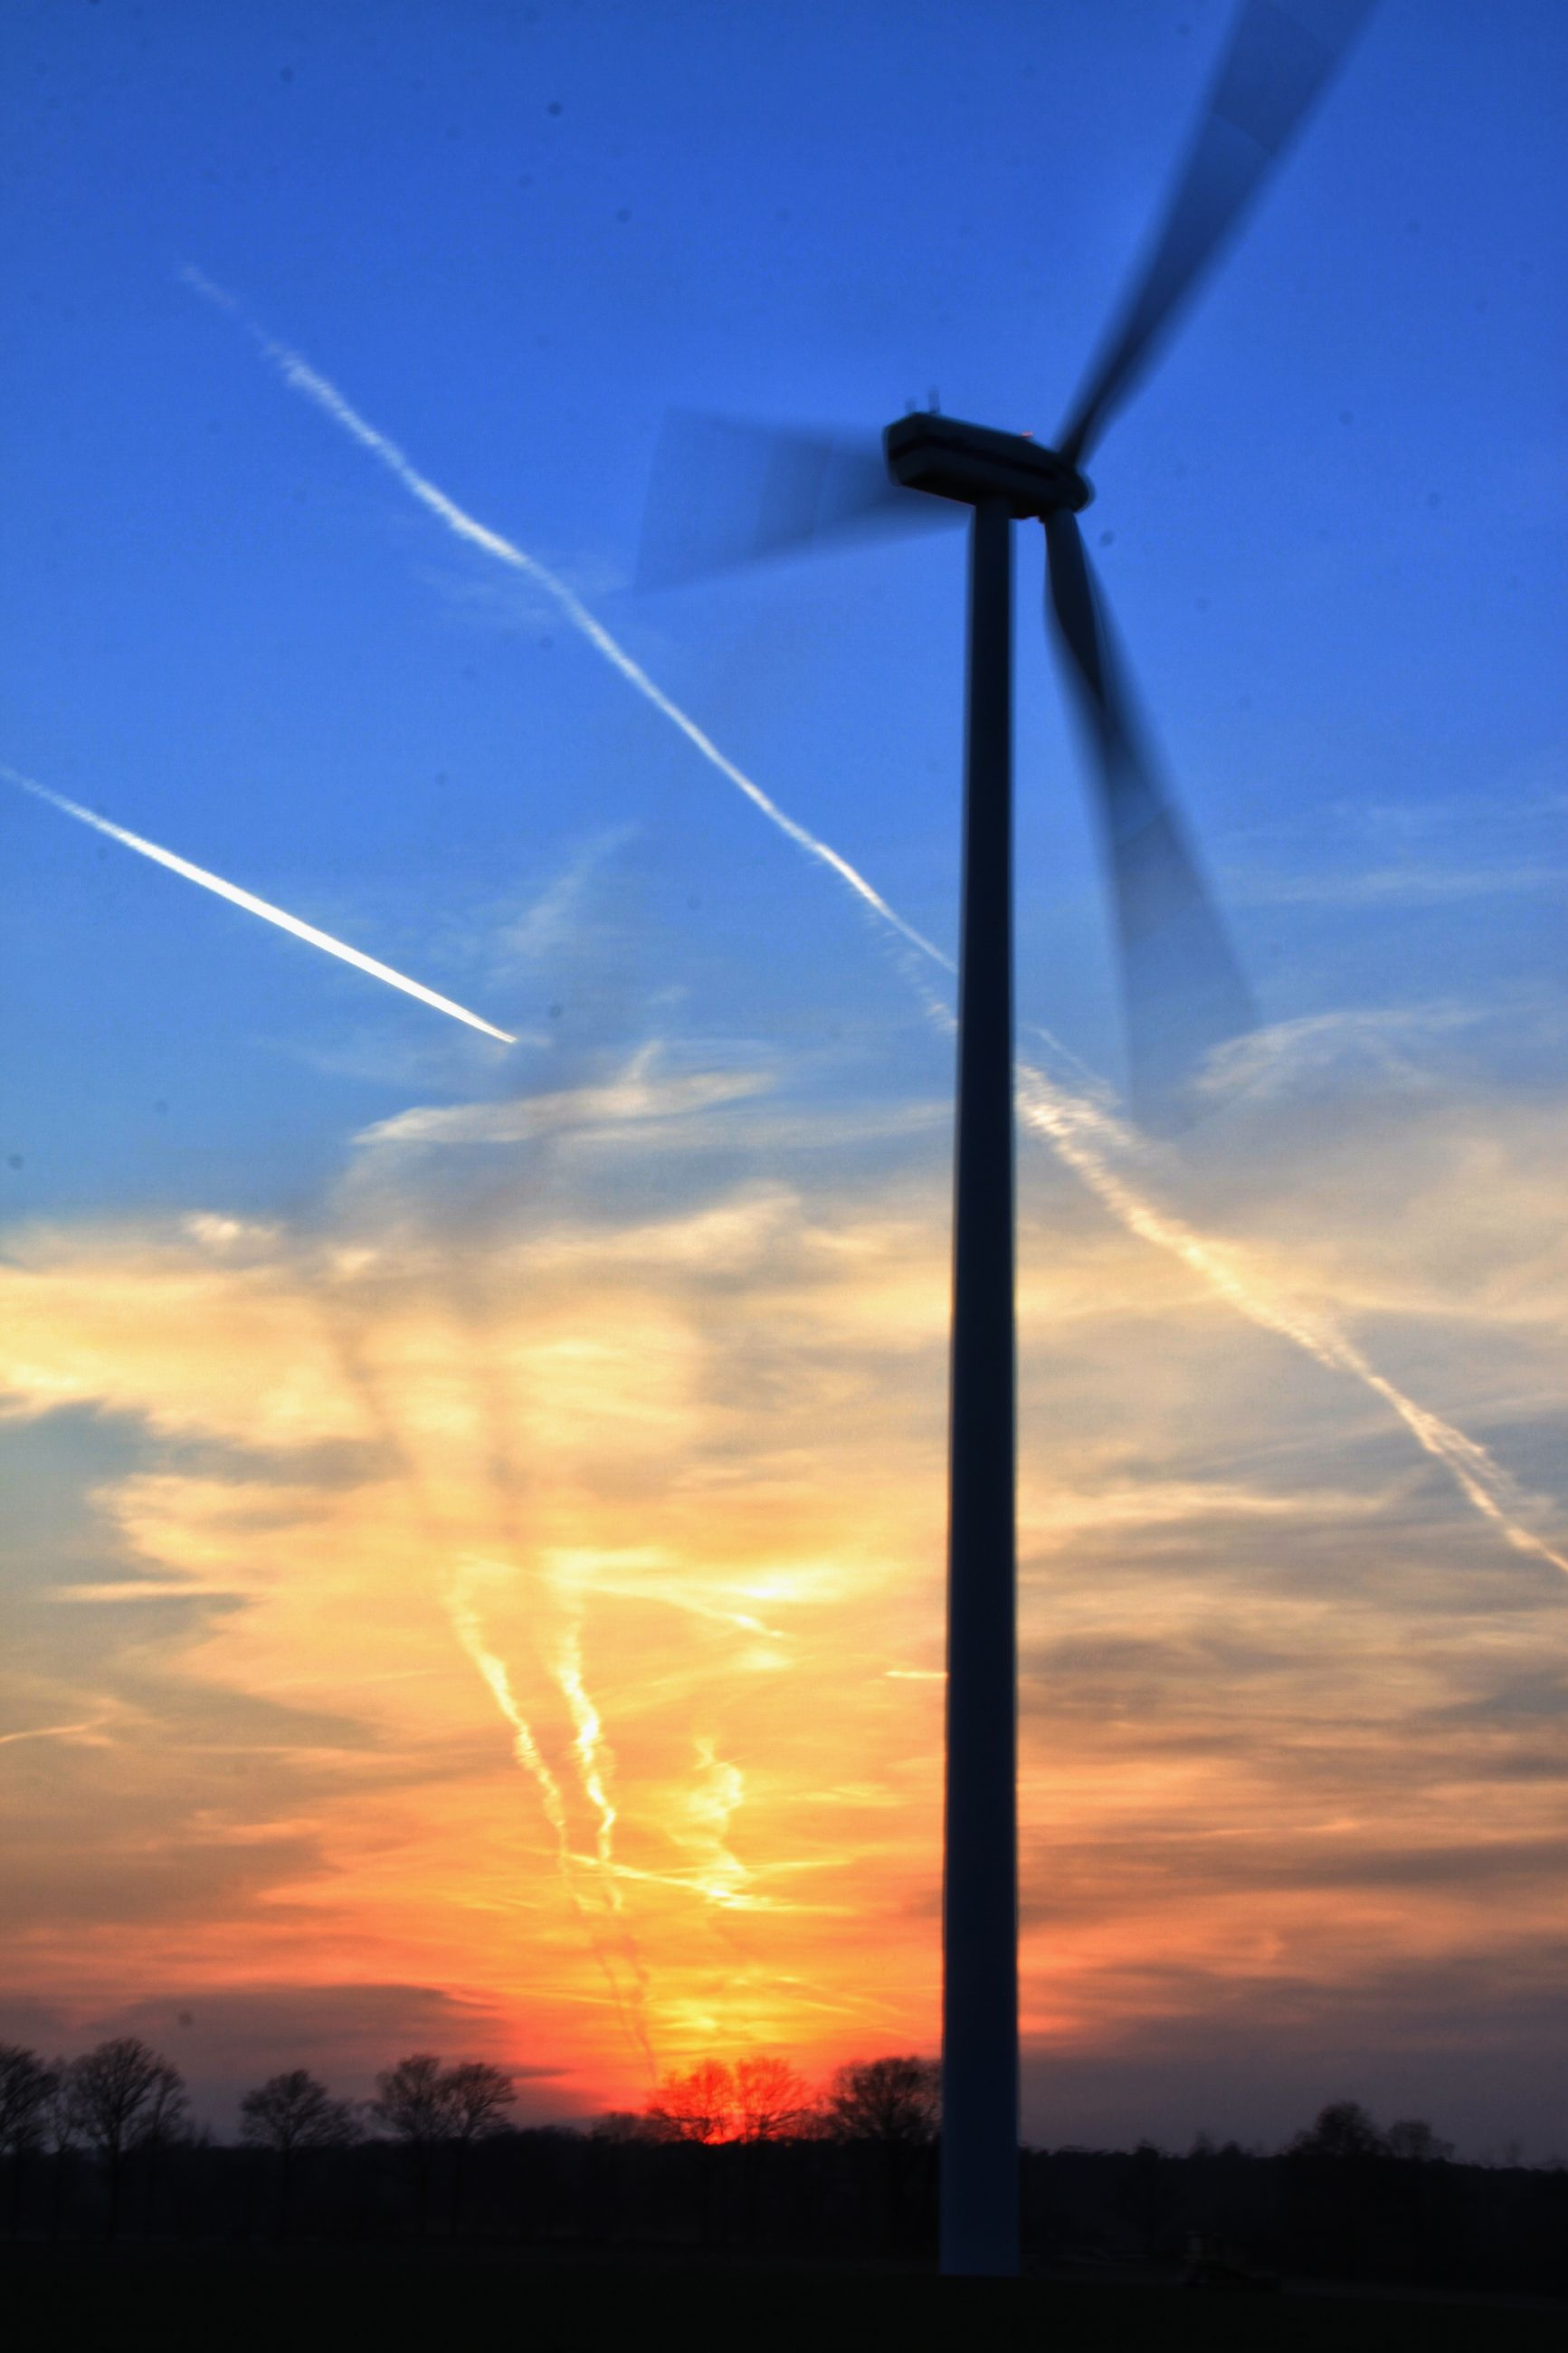 sunset, wind power, sky, wind turbine, alternative energy, windmill, renewable energy, fuel and power generation, environmental conservation, landscape, silhouette, cloud - sky, scenics, rural scene, beauty in nature, field, tranquil scene, tranquility, cloud, nature